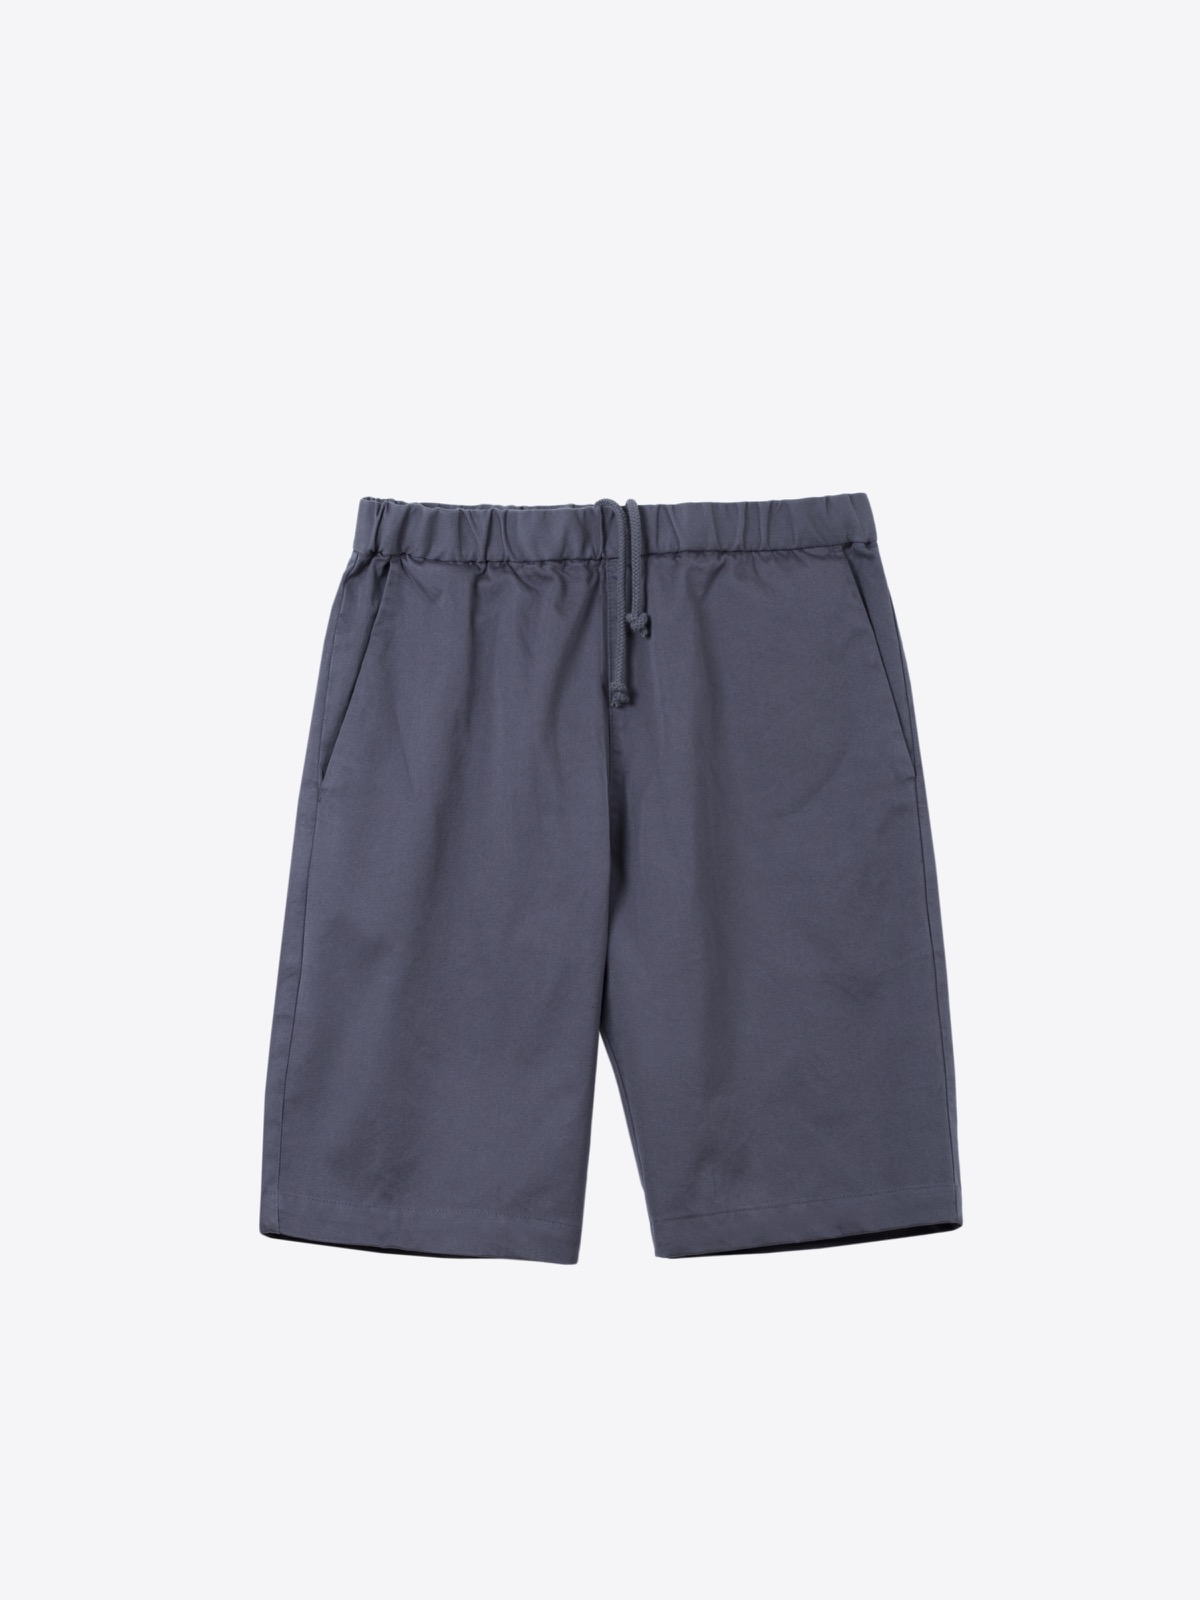 A2 lieblingstrousers 012 shorts | grey